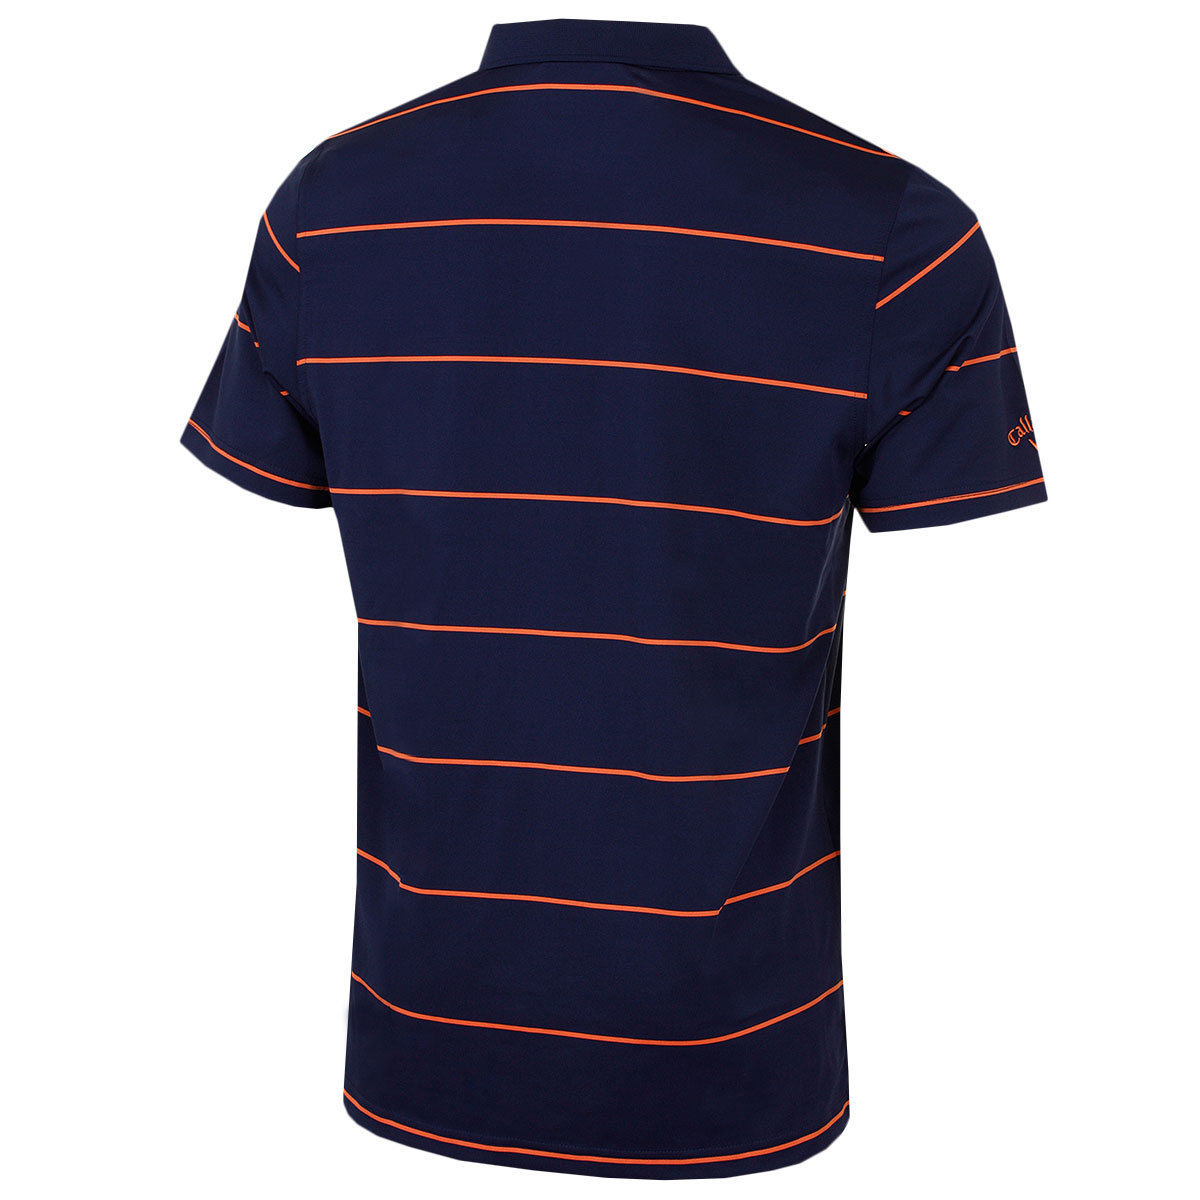 Callaway-Golf-Mens-Chev-Auto-Stripe-Polo-Shirt-Opti-Dri-Short-Sleeve-53-OFF-RRP thumbnail 11